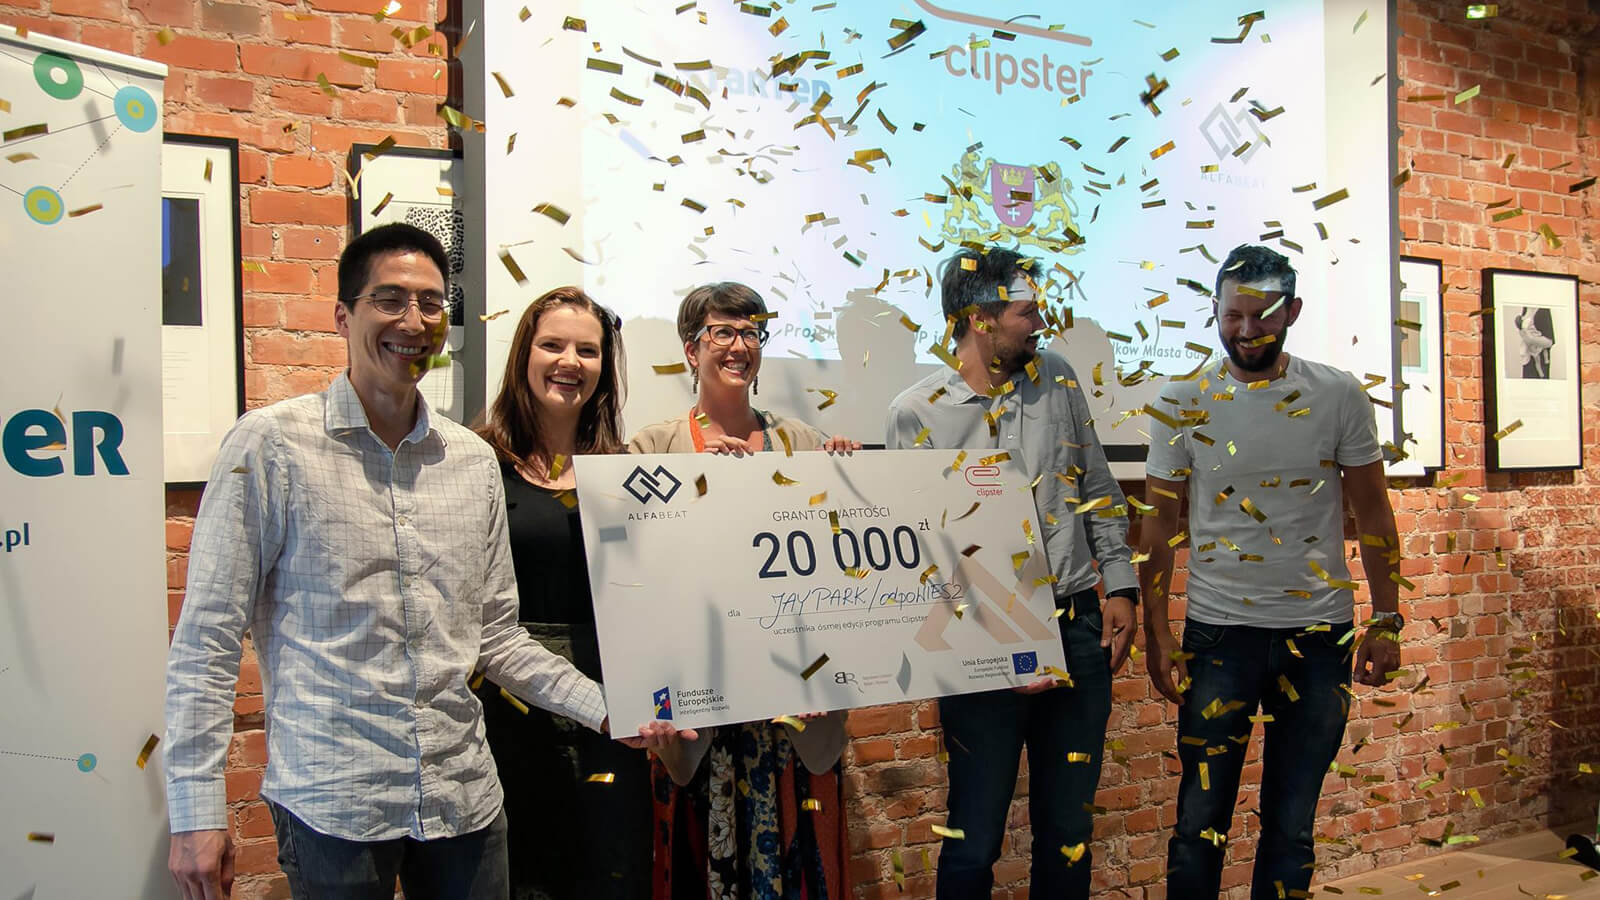 Jay Park, founder of the live game show app, odpoWIESZ, the Polish equivalent to HQ Trivia, winner of the 20,000PLN grant for best start-up at Clipster.